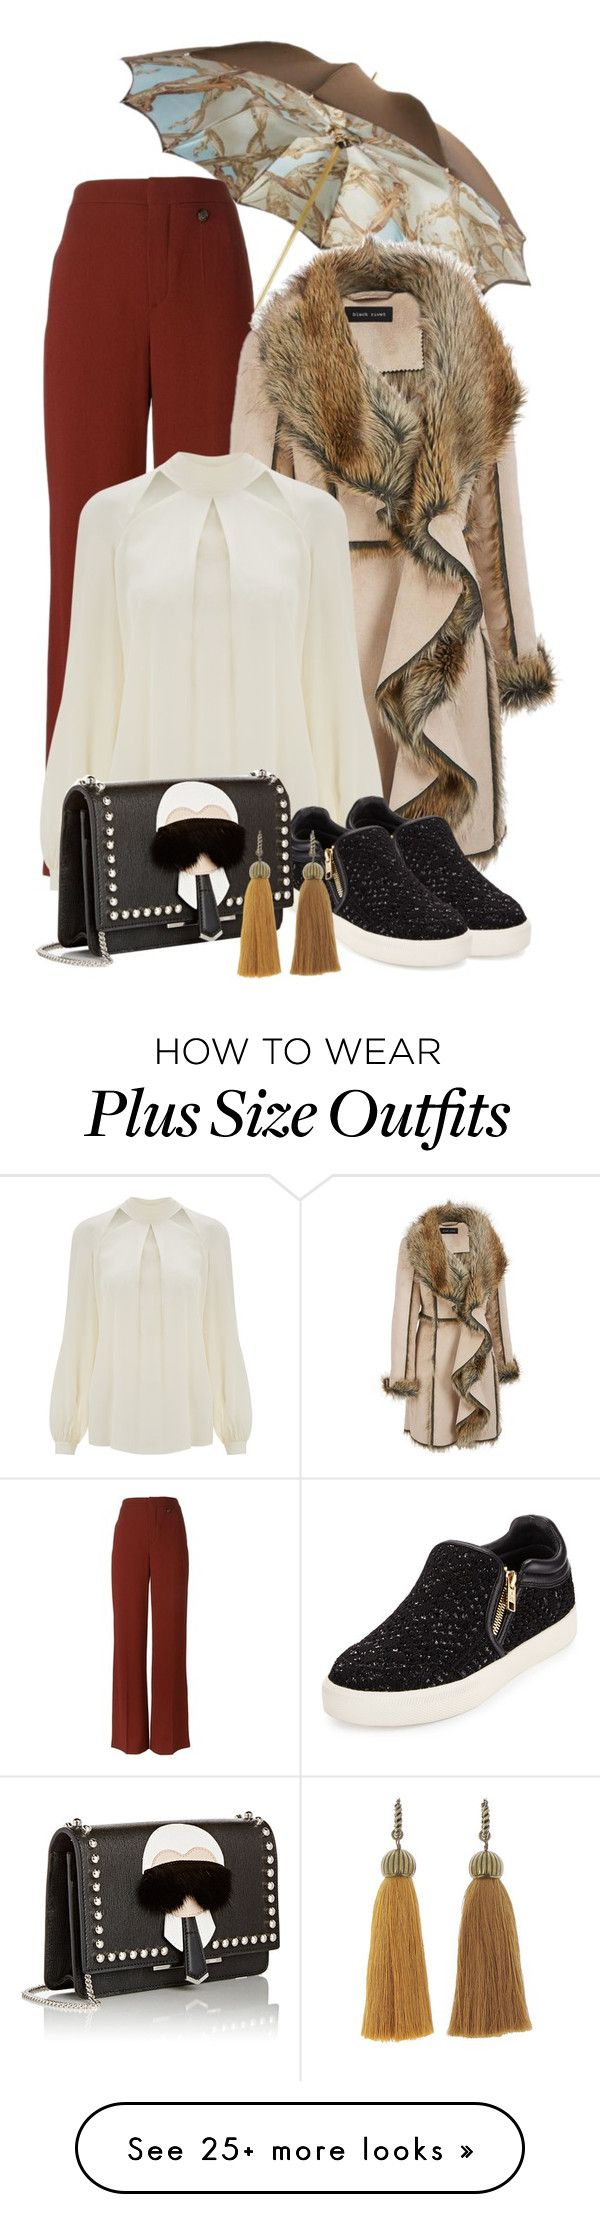 """""""It's a rainy day today """" by chalsouv on Polyvore featuring Persol, Chloé, Temperley London, Ash, Fendi, Lanvin and plus size clothing"""